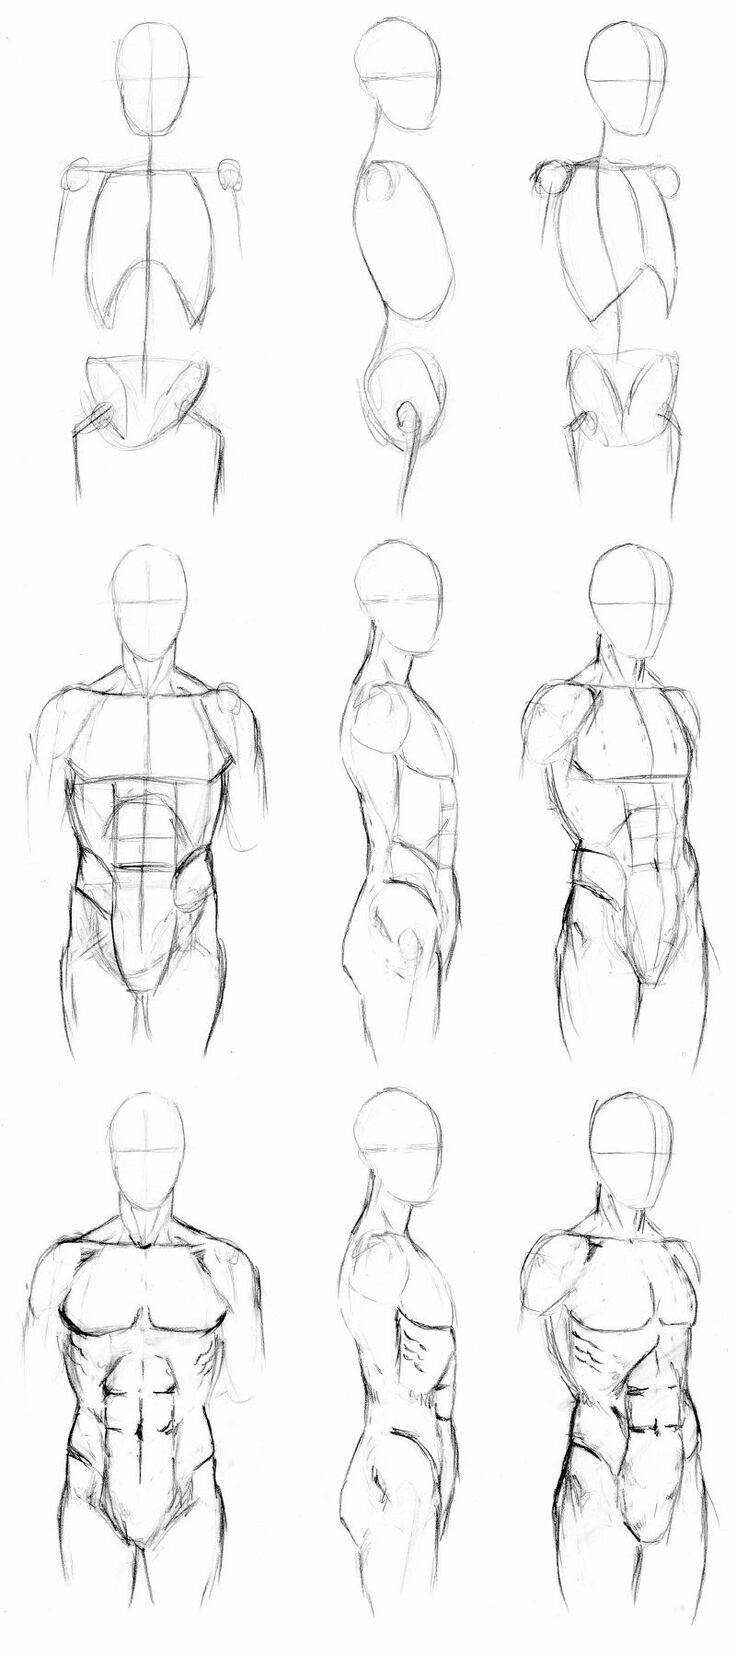 Pin By Borelva Ruddy On Corpspersonnage Pinterest Drawings Guy